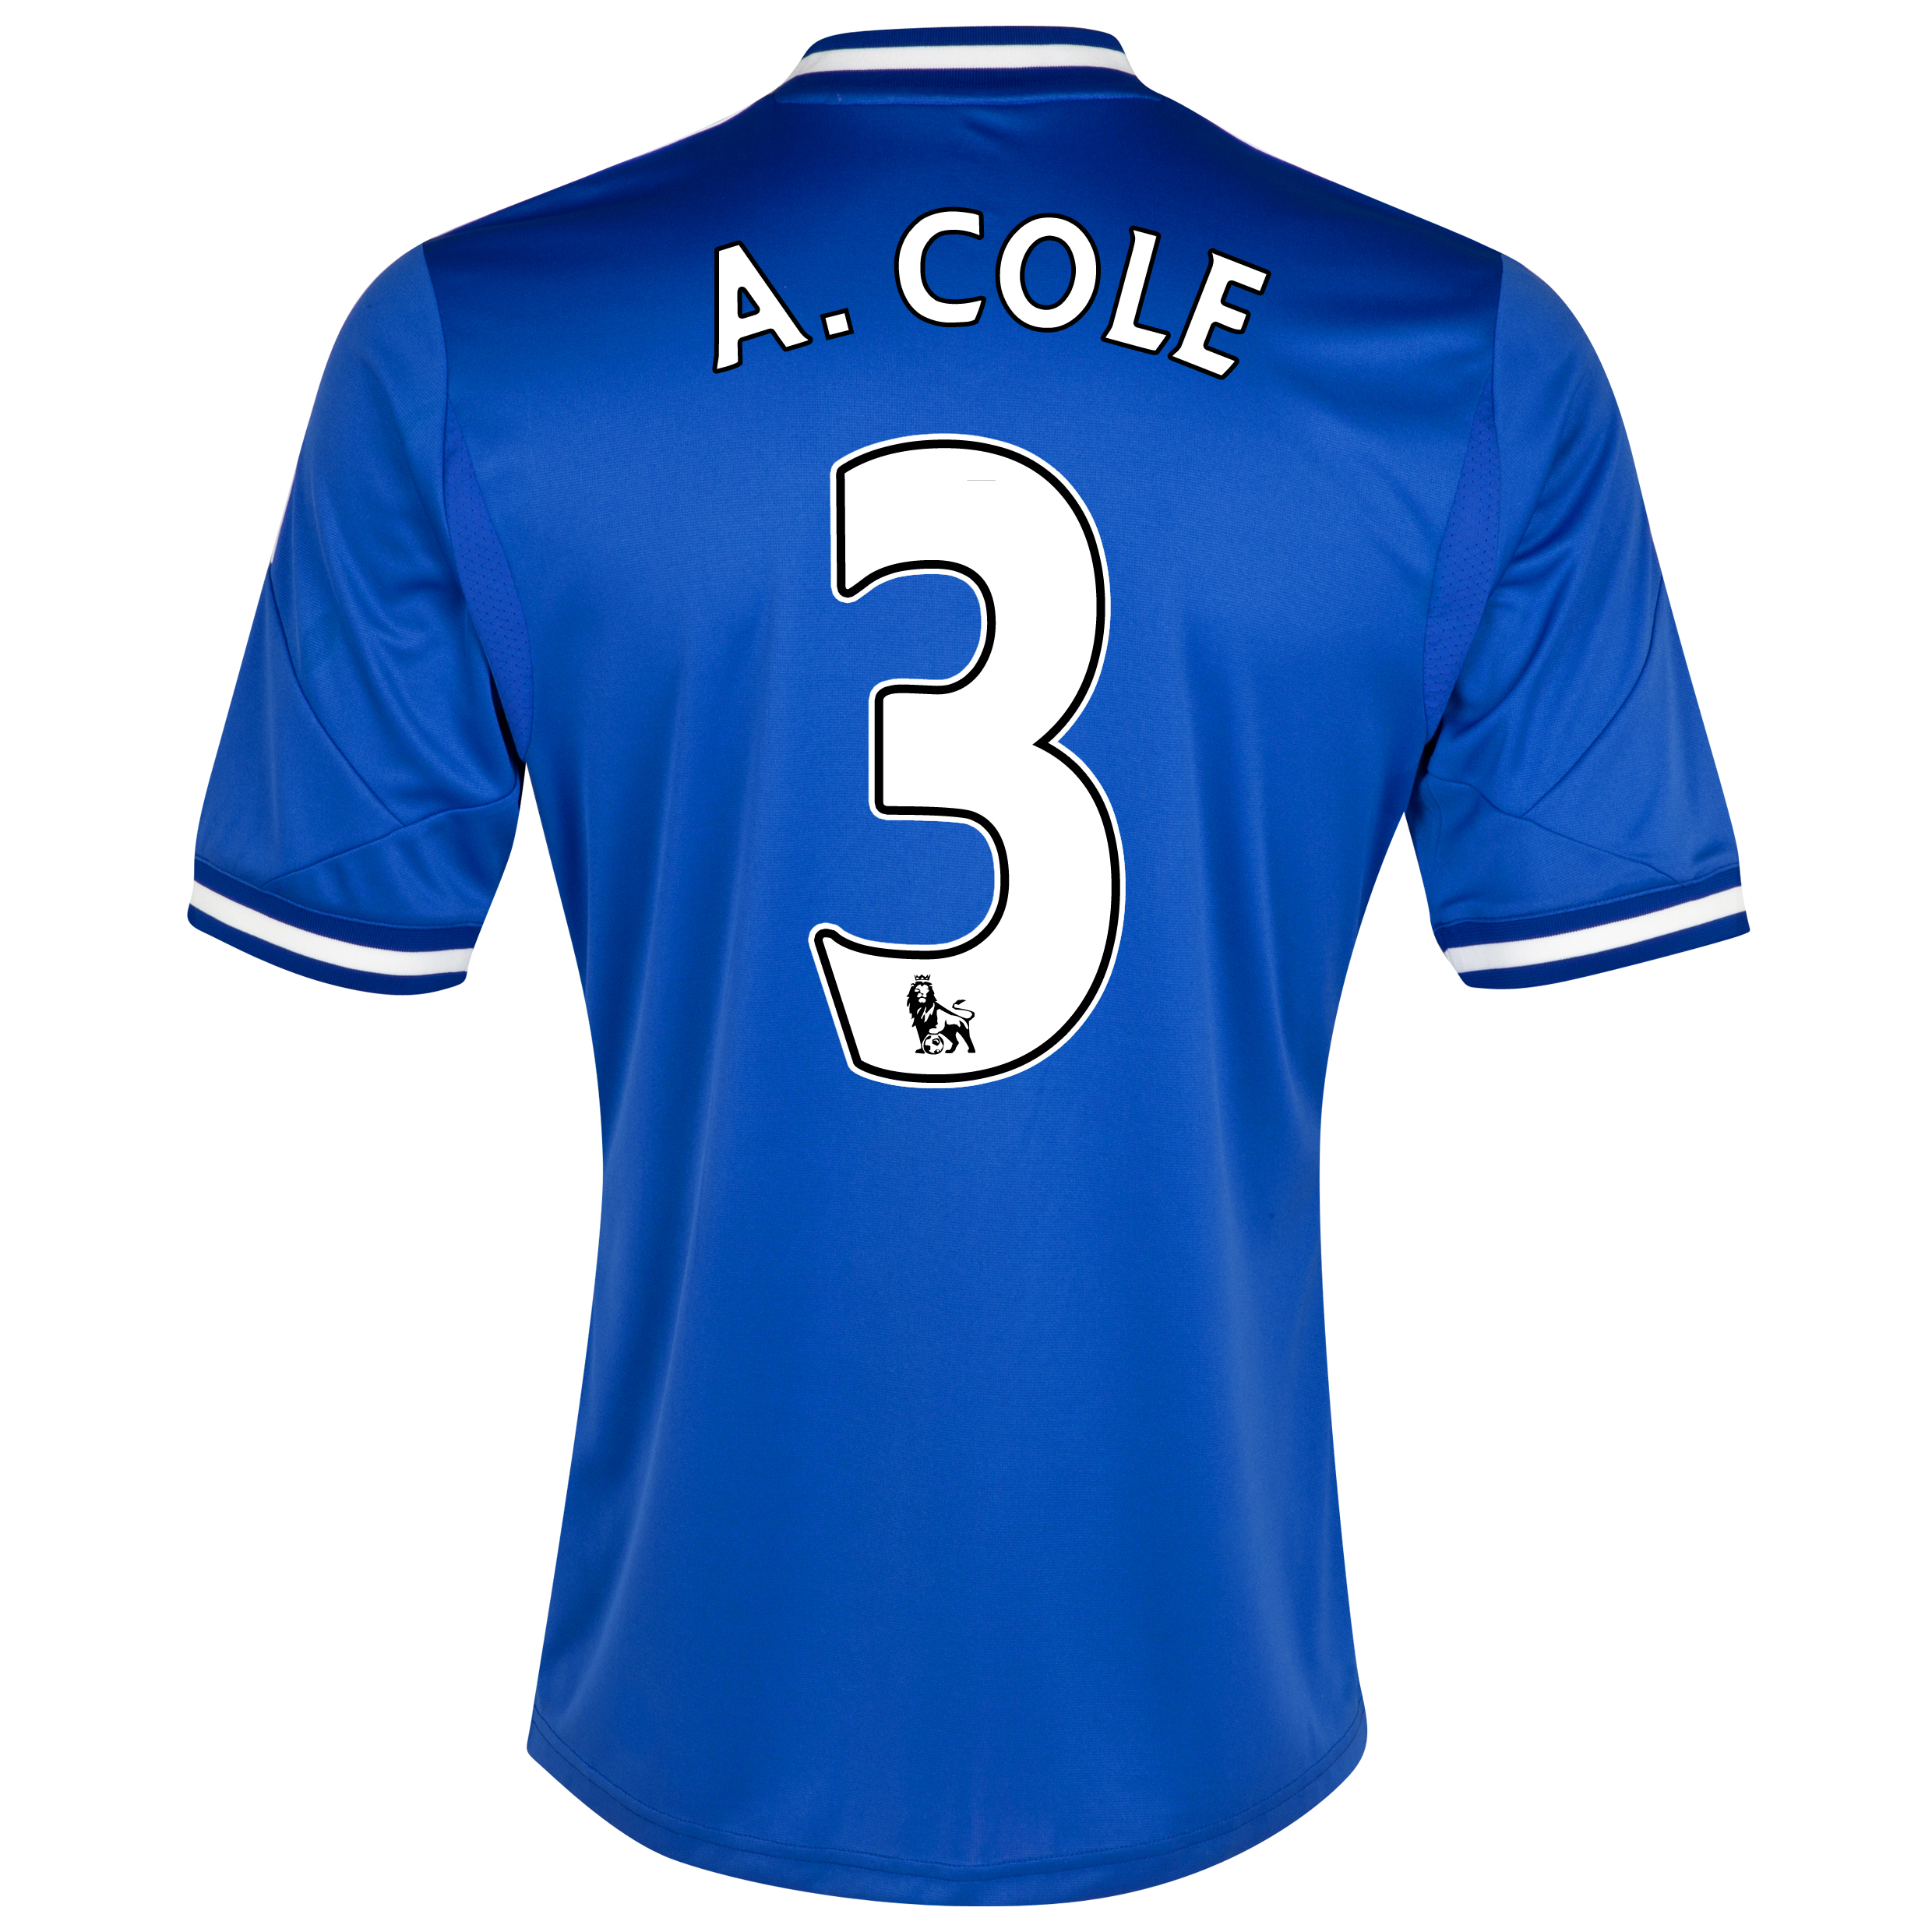 Chelsea Home Shirt 2013/14 with A.Cole 3 printing